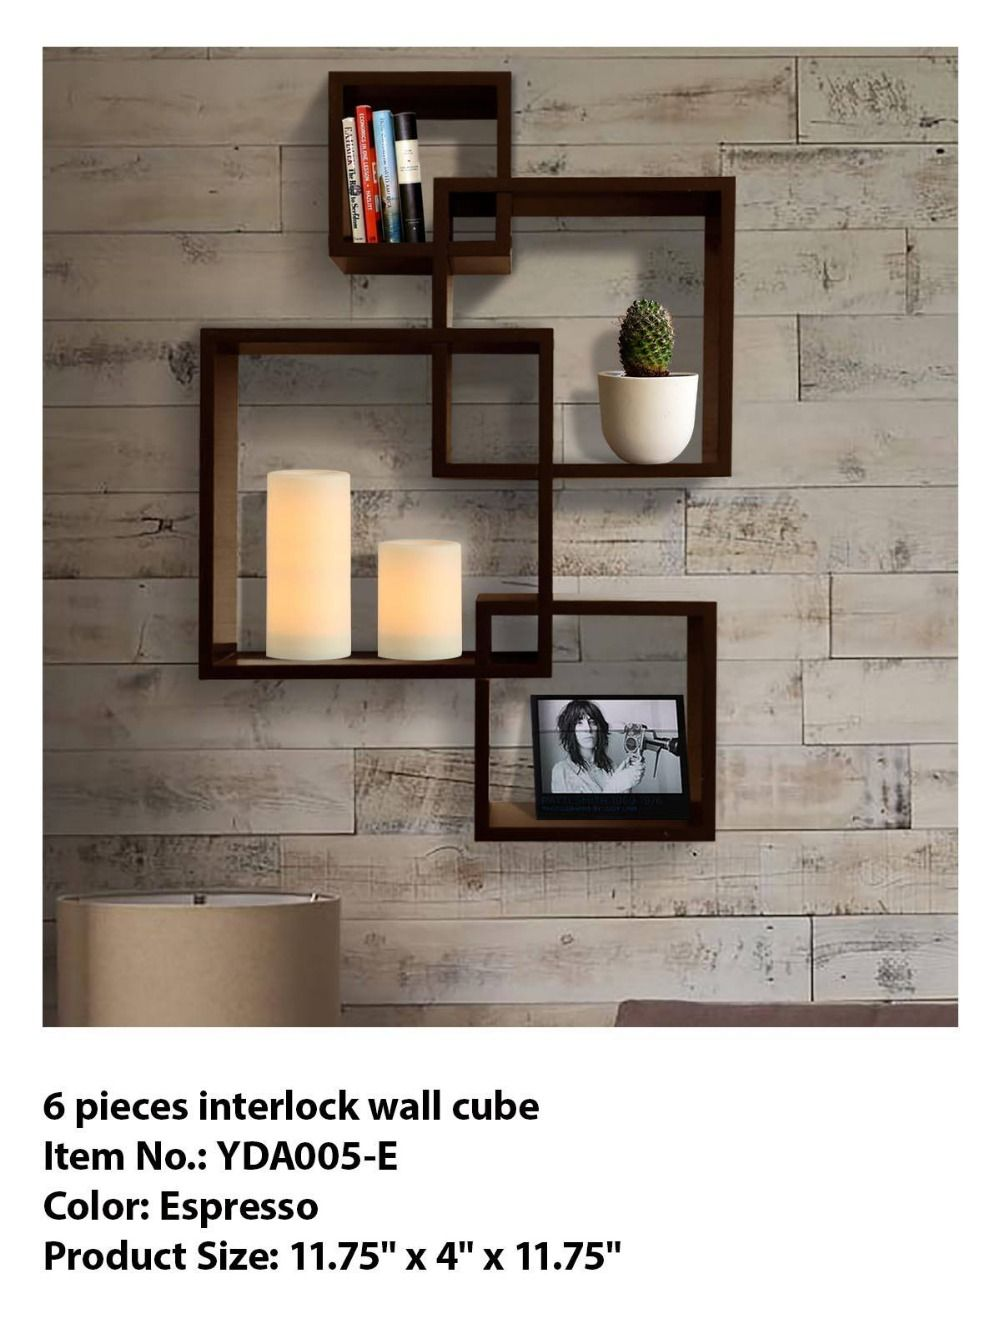 6 pieces interlock wall cubedecorative wooden wall cubescube 6 pieces interlock wall cubedecorative wooden wall cubescube wall shelf buy cube wall shelfdecorative wooden wall cubeswall storage cubes product on amipublicfo Image collections